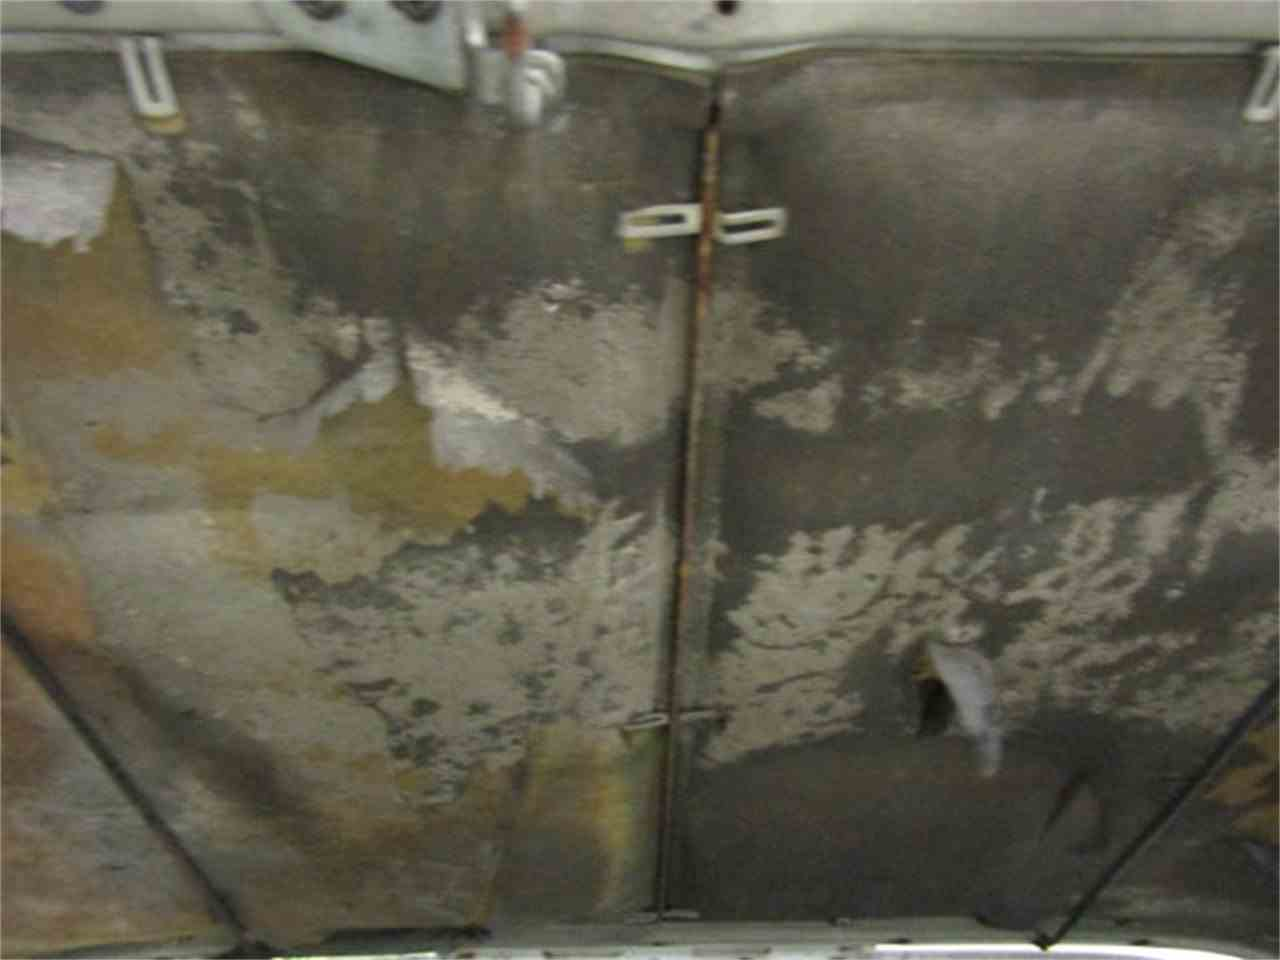 Large Picture of '91 Jeep located in Christiansburg Virginia - $6,900.00 - KF6X